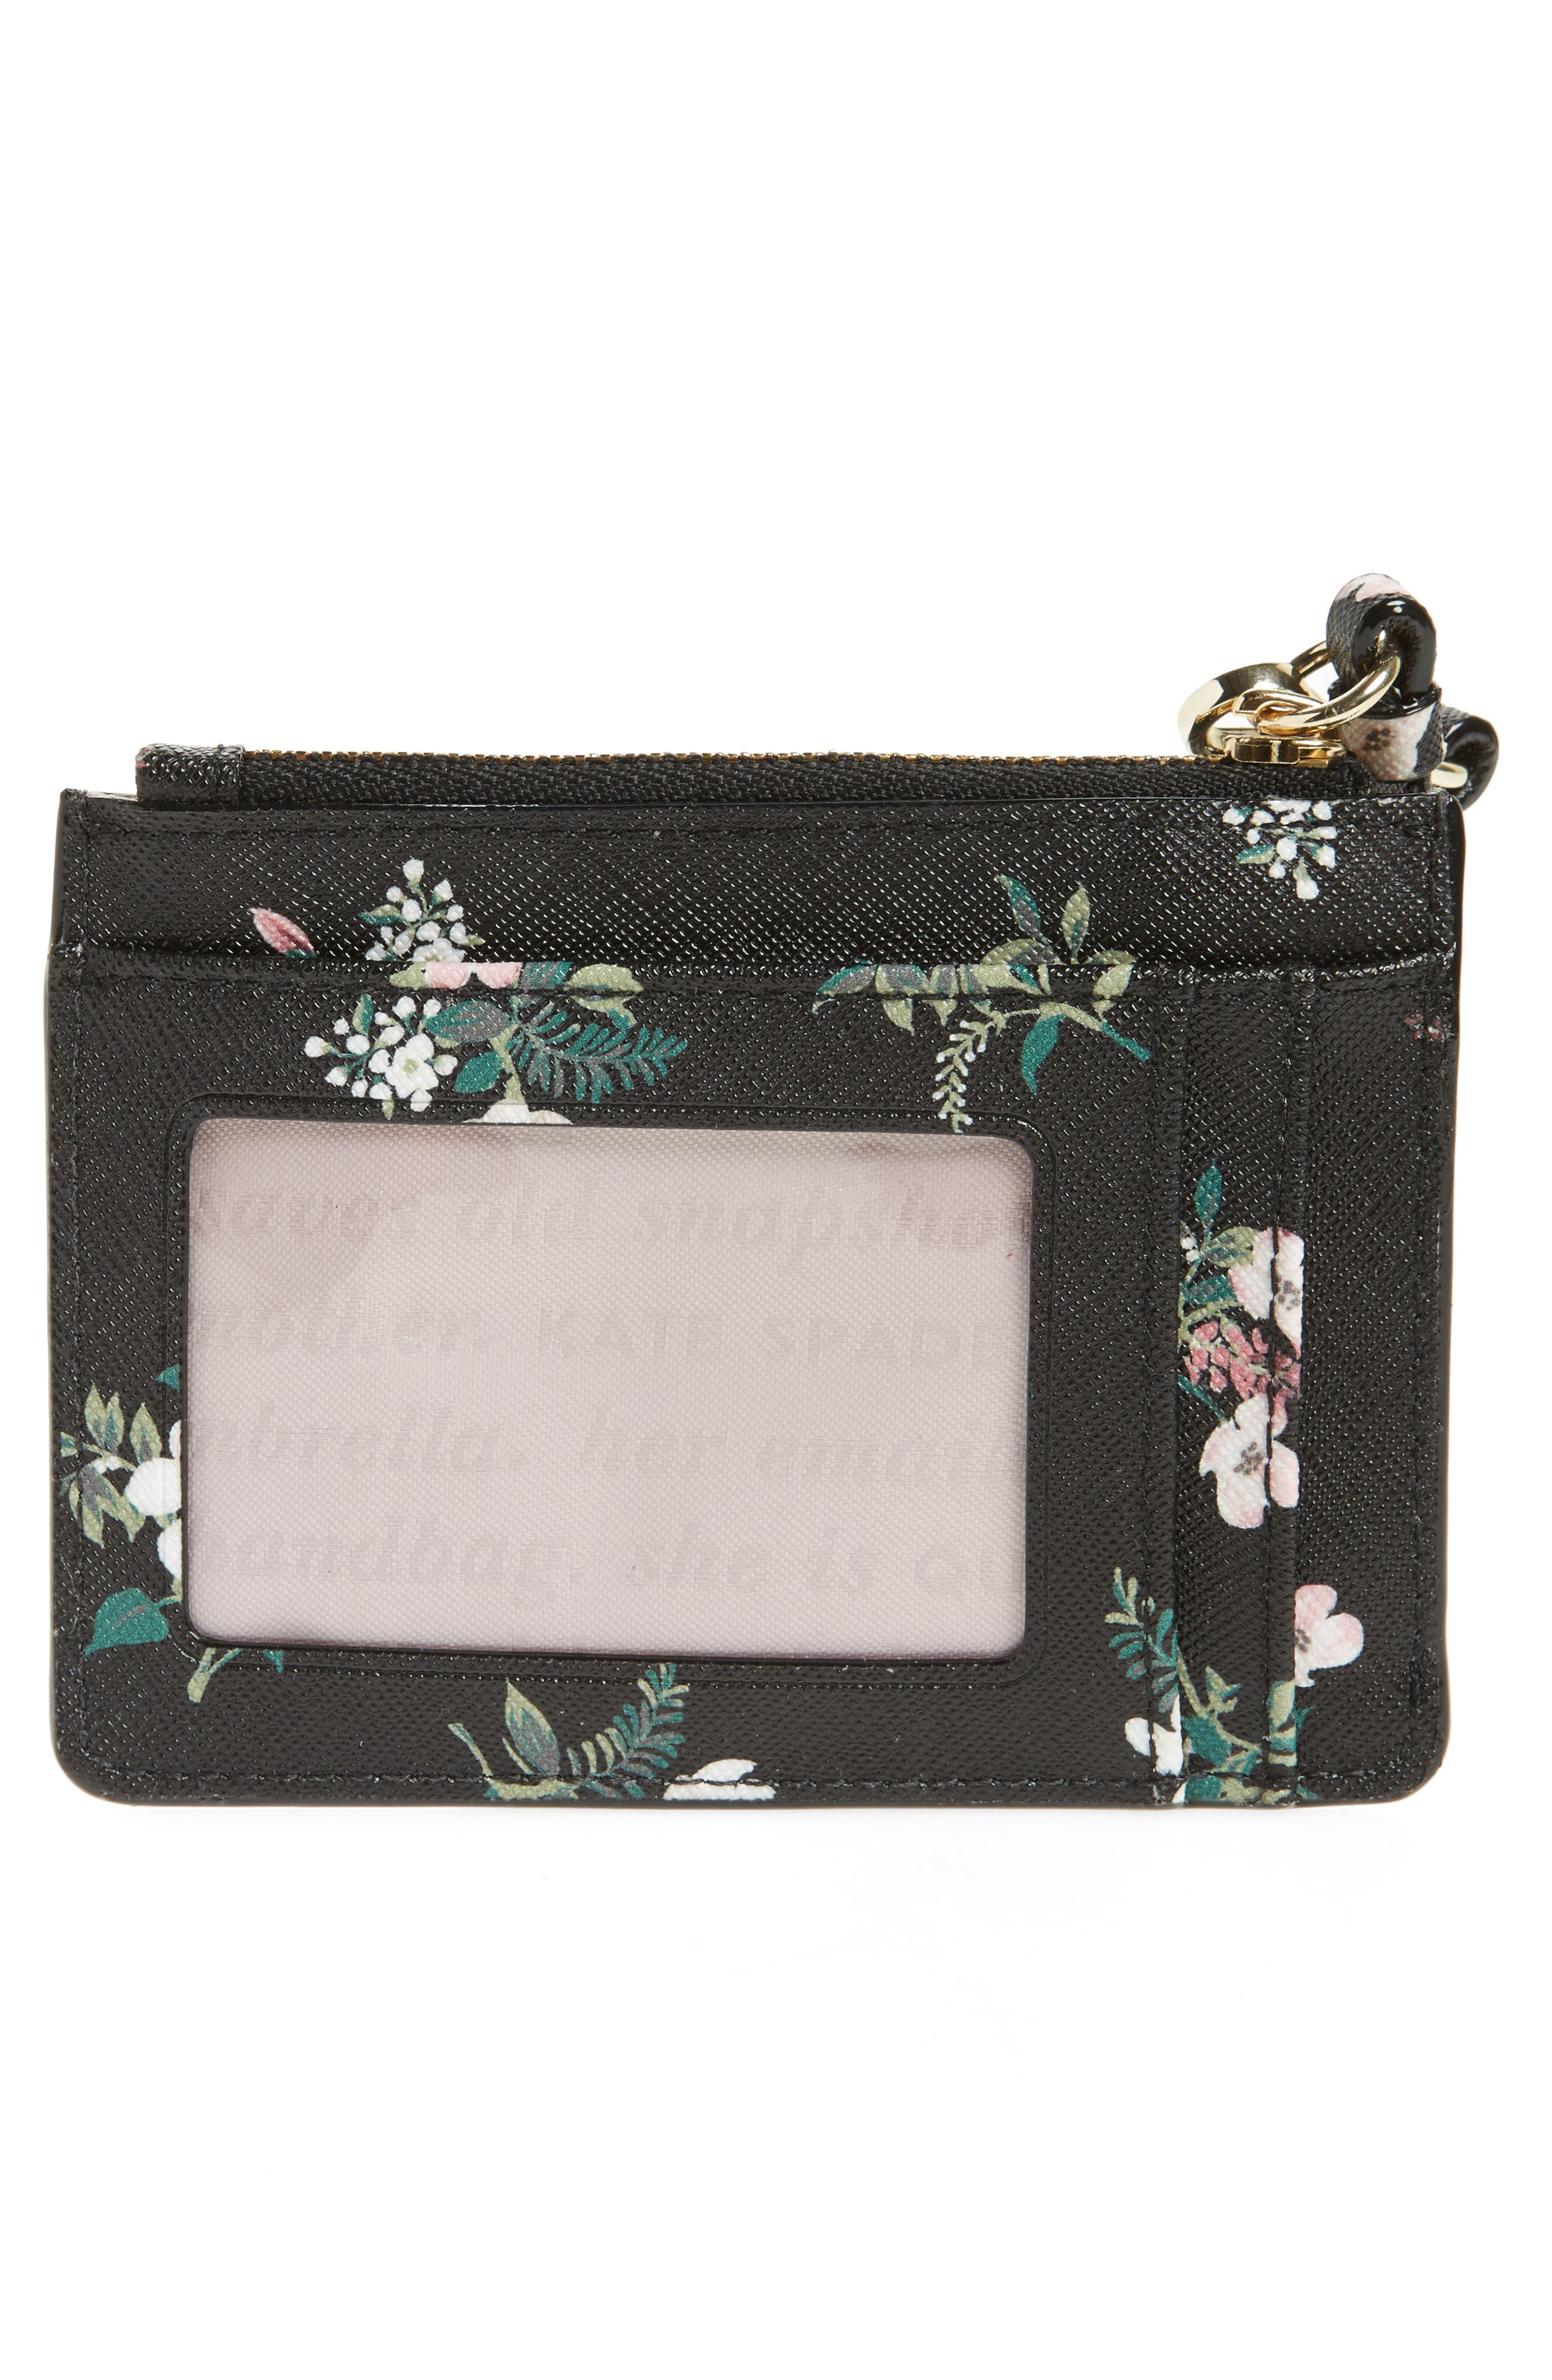 cameron street - flora mellody fabric card case,                             Alternate thumbnail 2, color,                             Black Multi